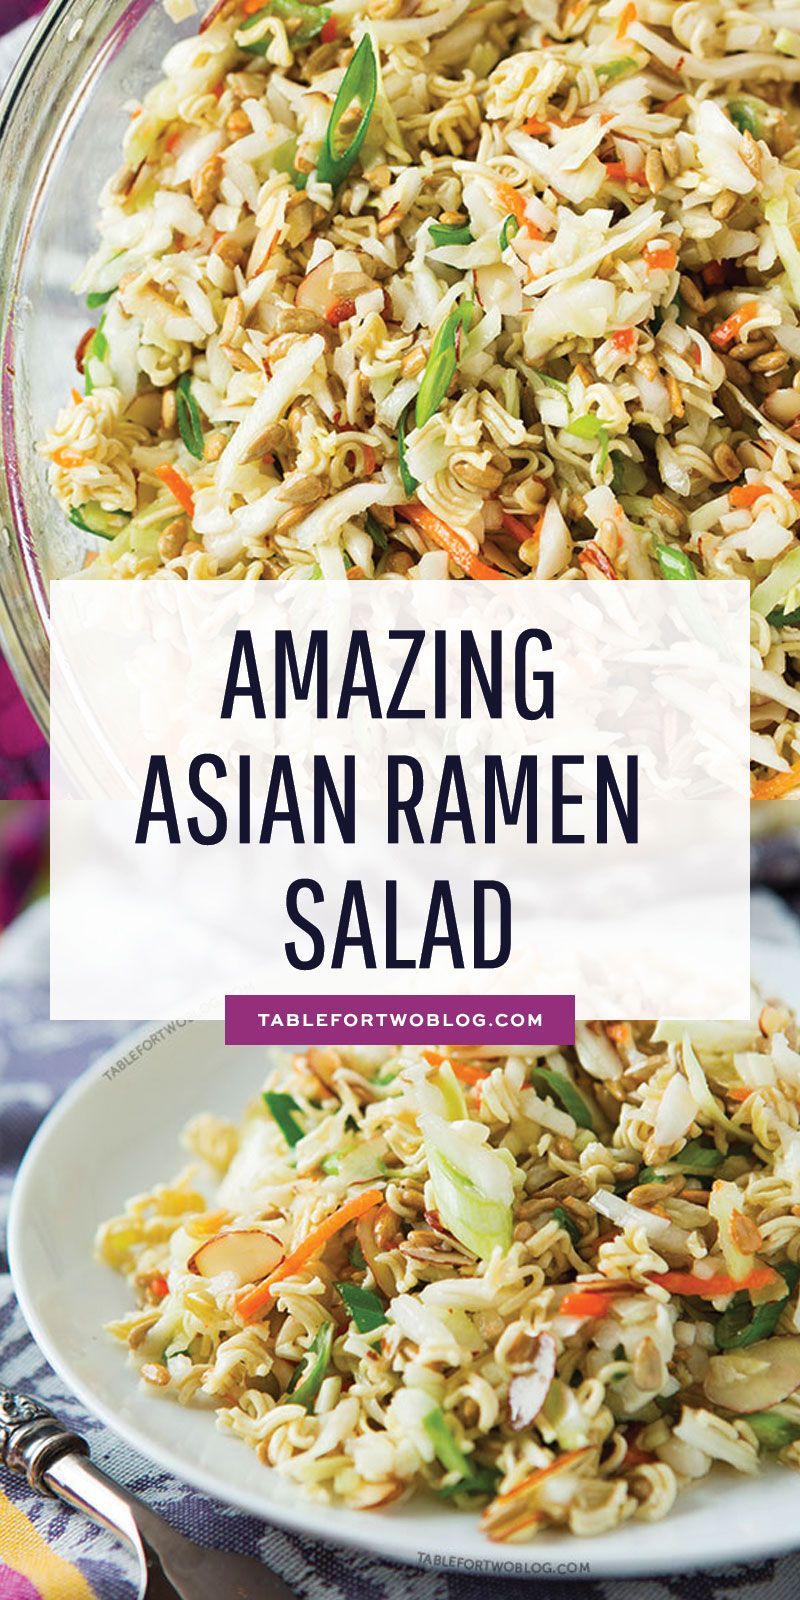 This ridiculously amazing Asian ramen salad will have you and your guests going back for thirds and fourths. Everyone will be asking for the recipe and you'll want to bring this easy dish to every potluck! #ramensalad #asianramensalad #easypotluckrecipes